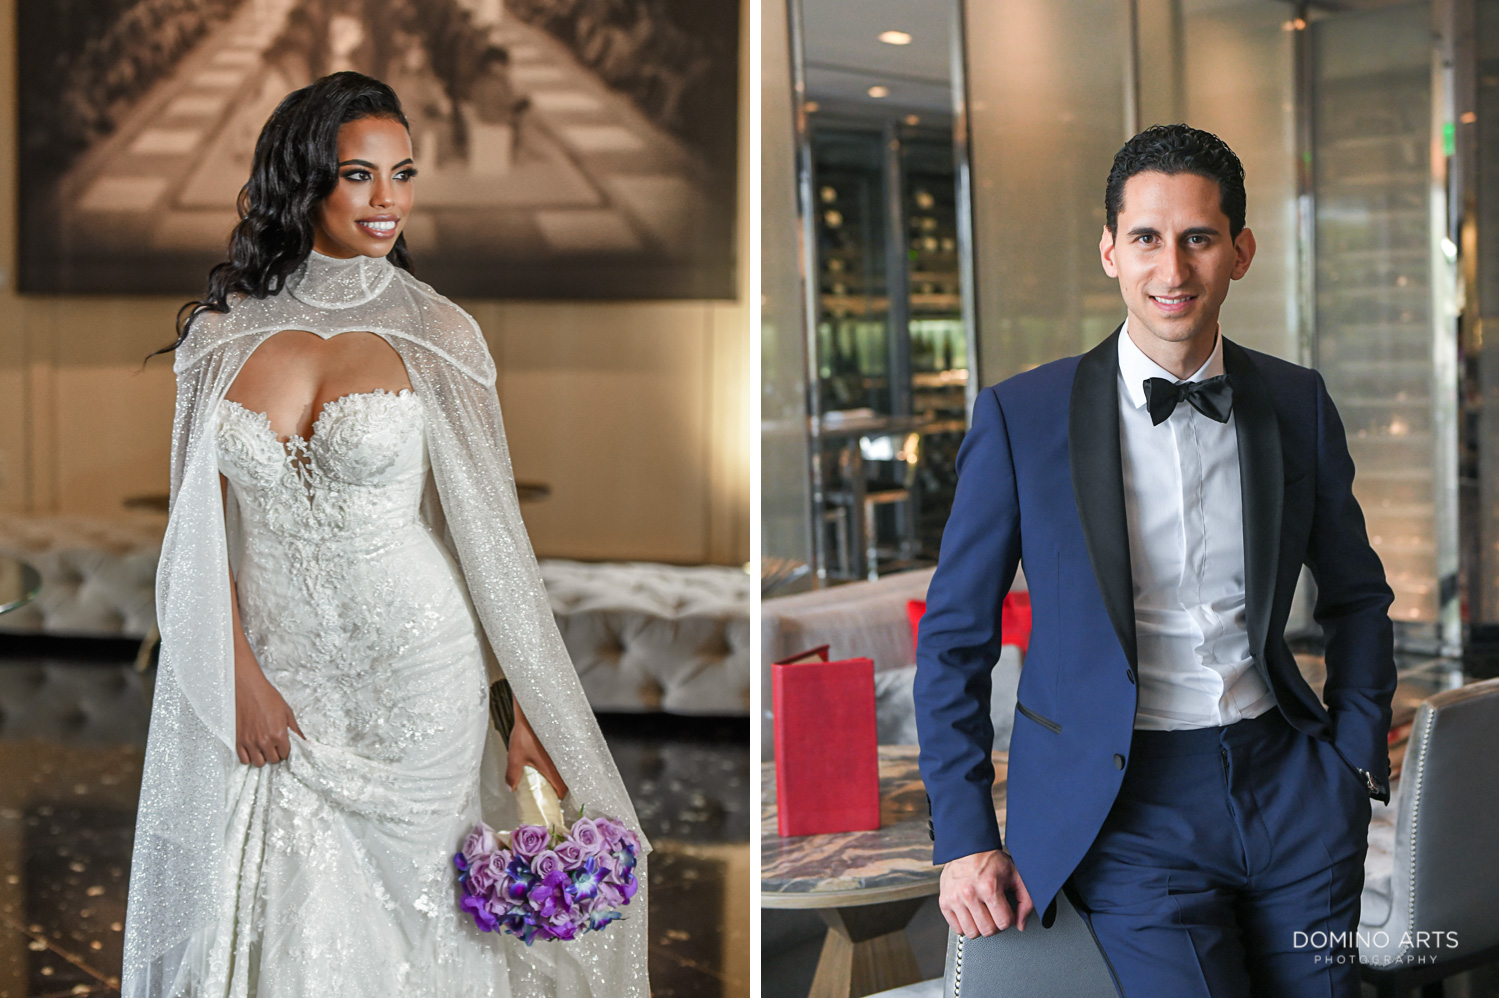 Cool wedding pictures of bride and groom at The St. Regis Bal Harbour